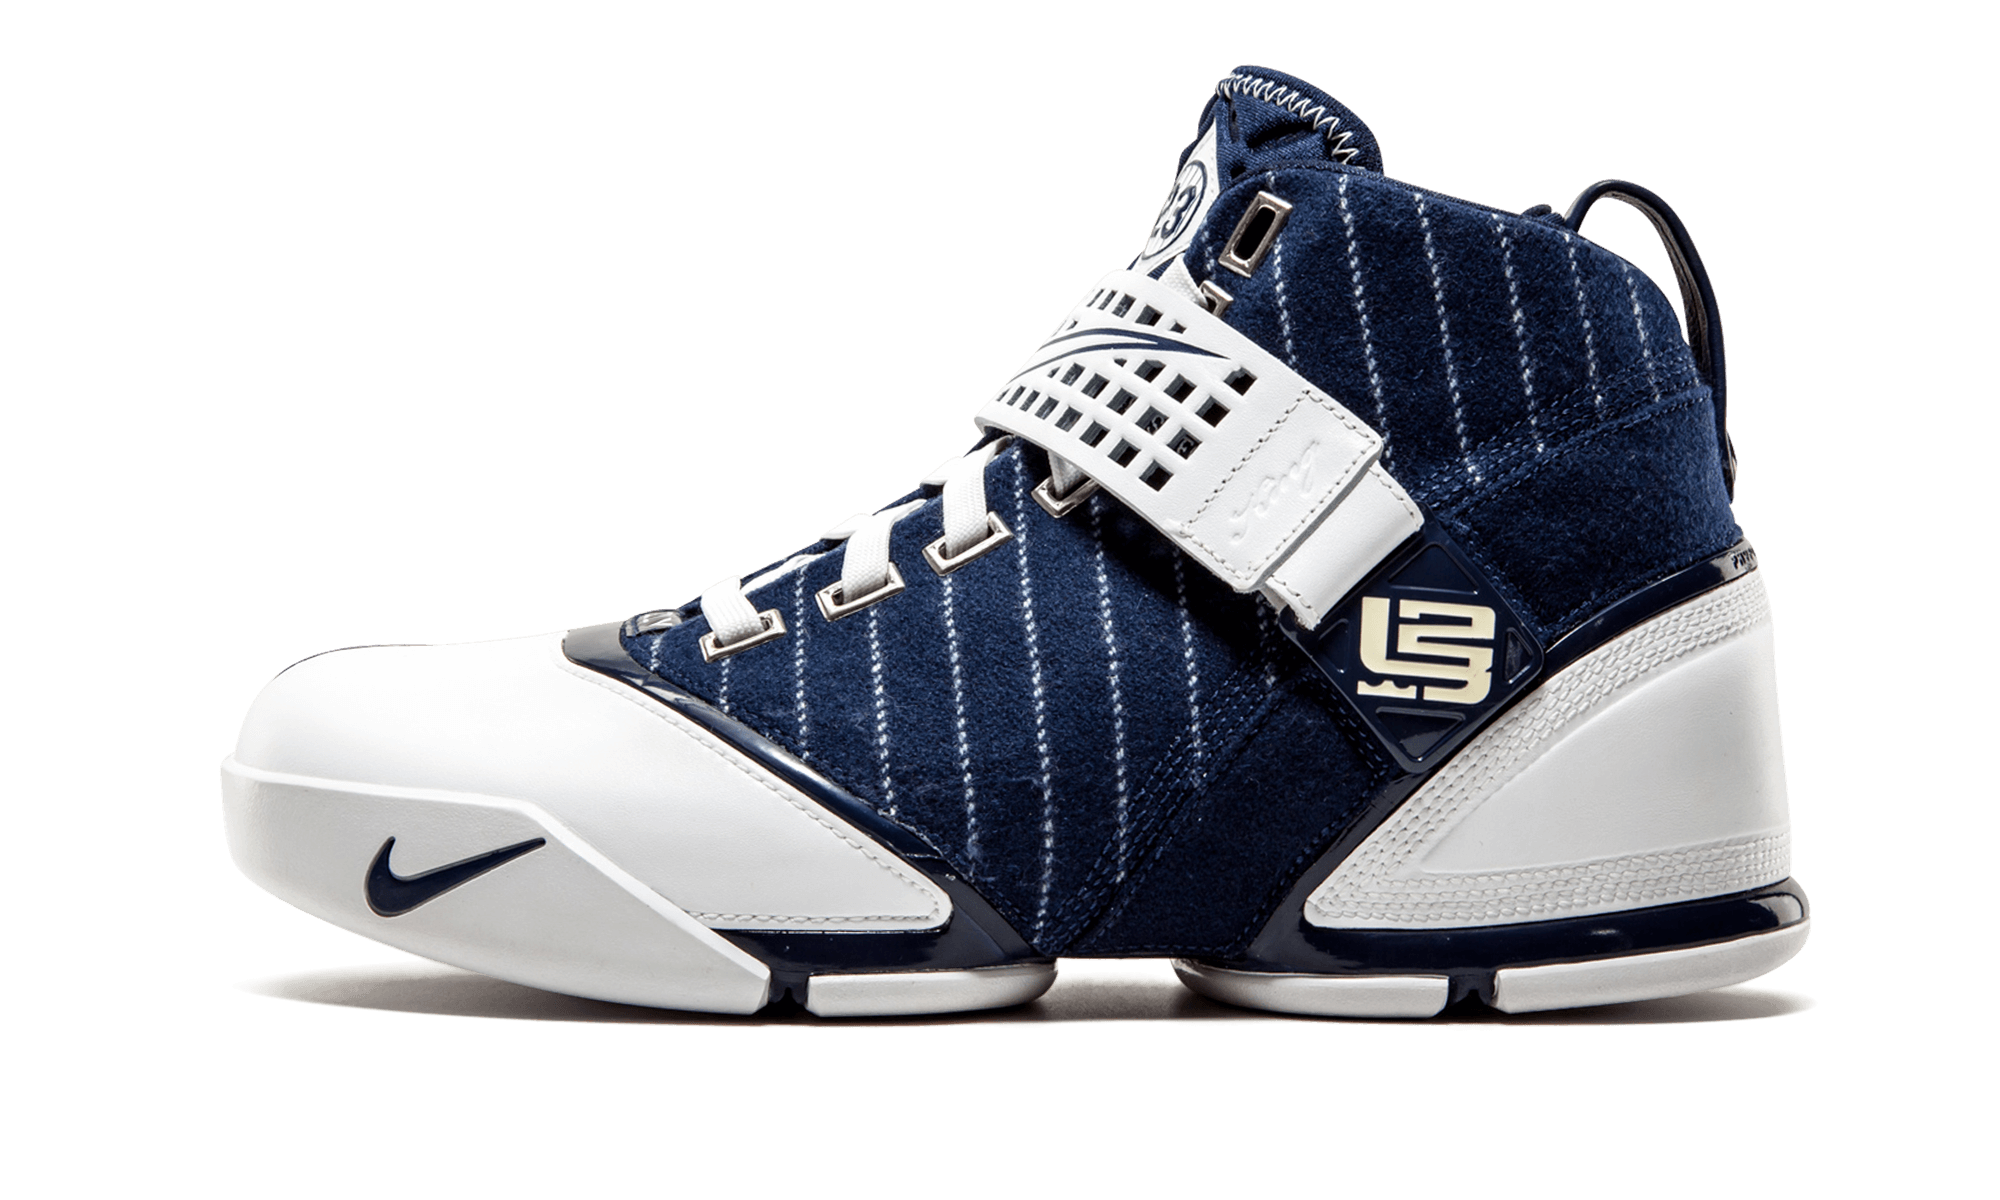 promo code 9b6c3 aef45 This extremely rare colorway of the Nike LeBron 5 is inspired by LeBron  James  favorite